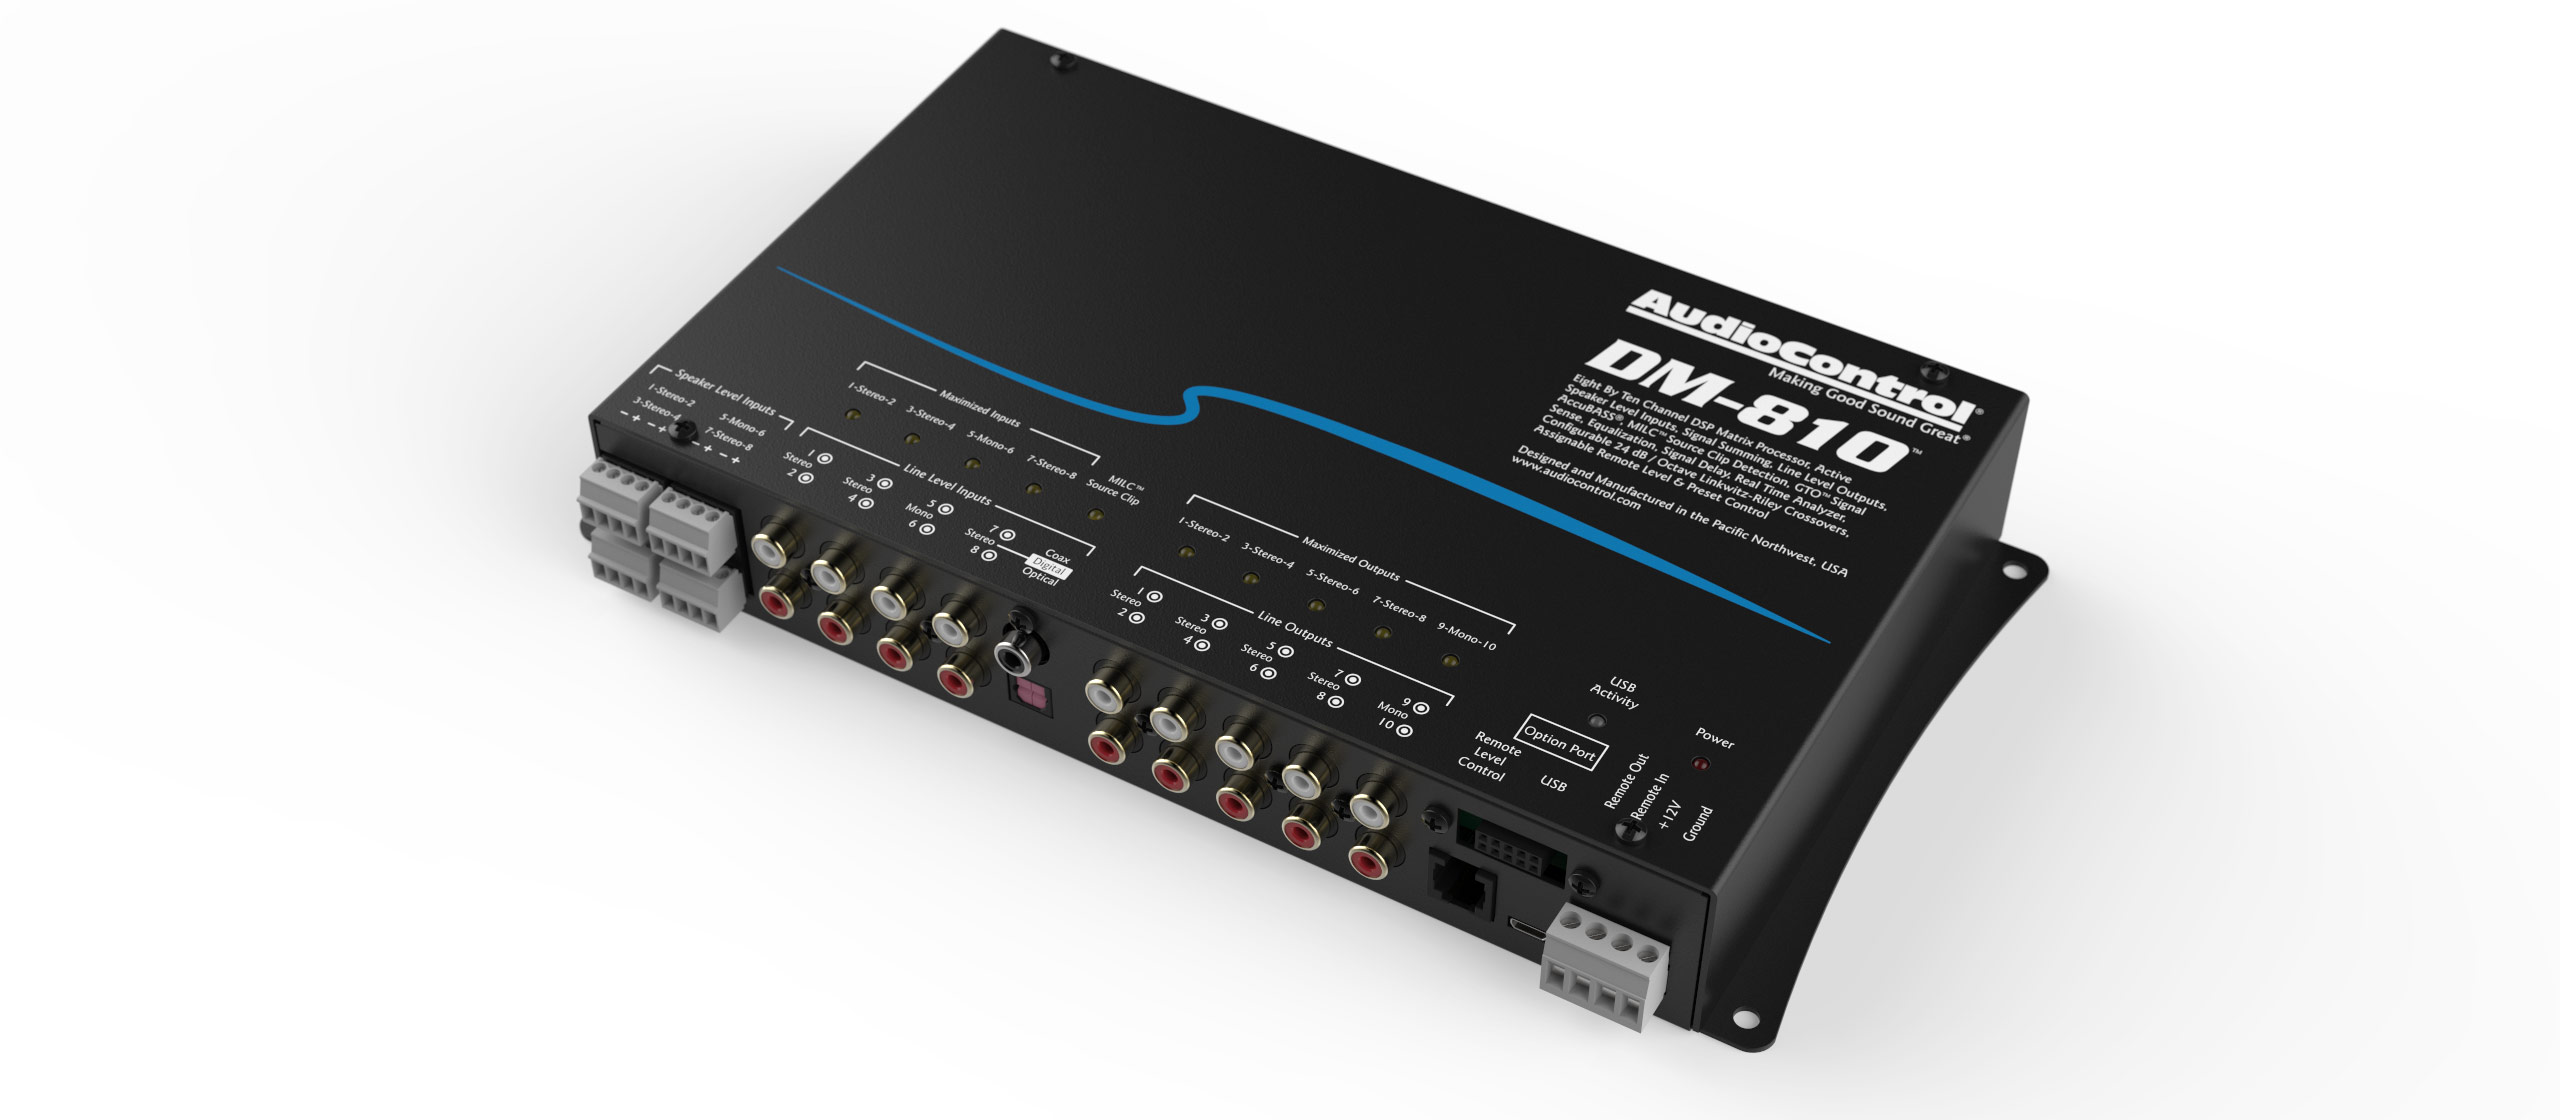 DM-810 | AudioControl